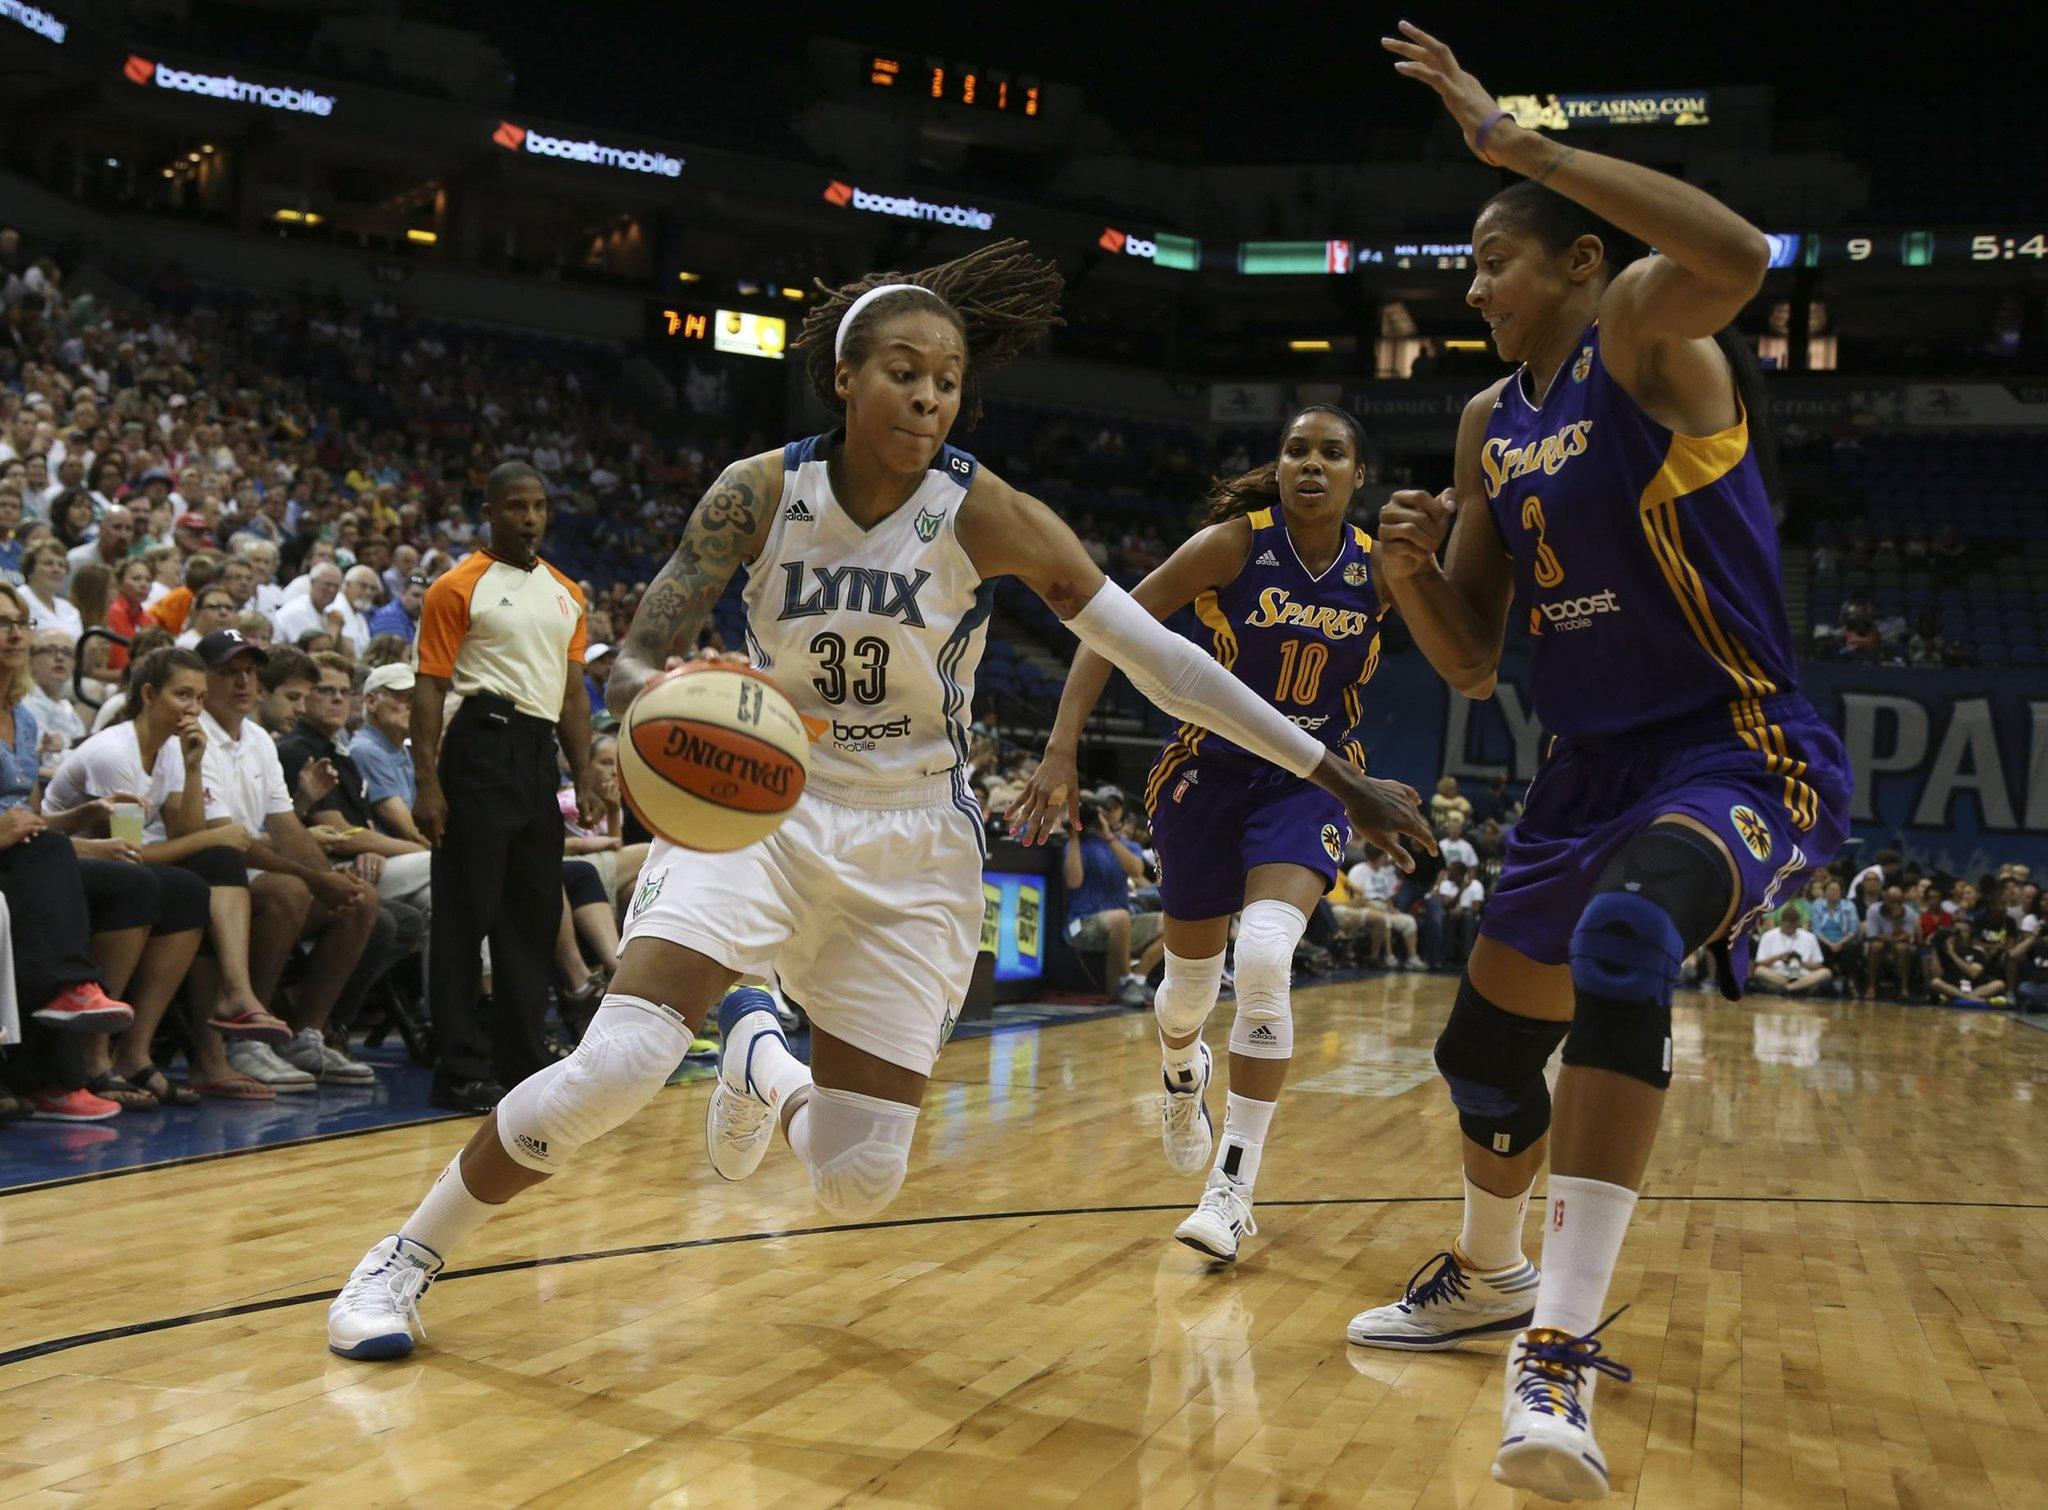 Seimone Augustus (33) of the Minnesota Lynx drives against the Los Angeles Sparks' Candace Parker in the first half at the Target Center in Minneapolis.